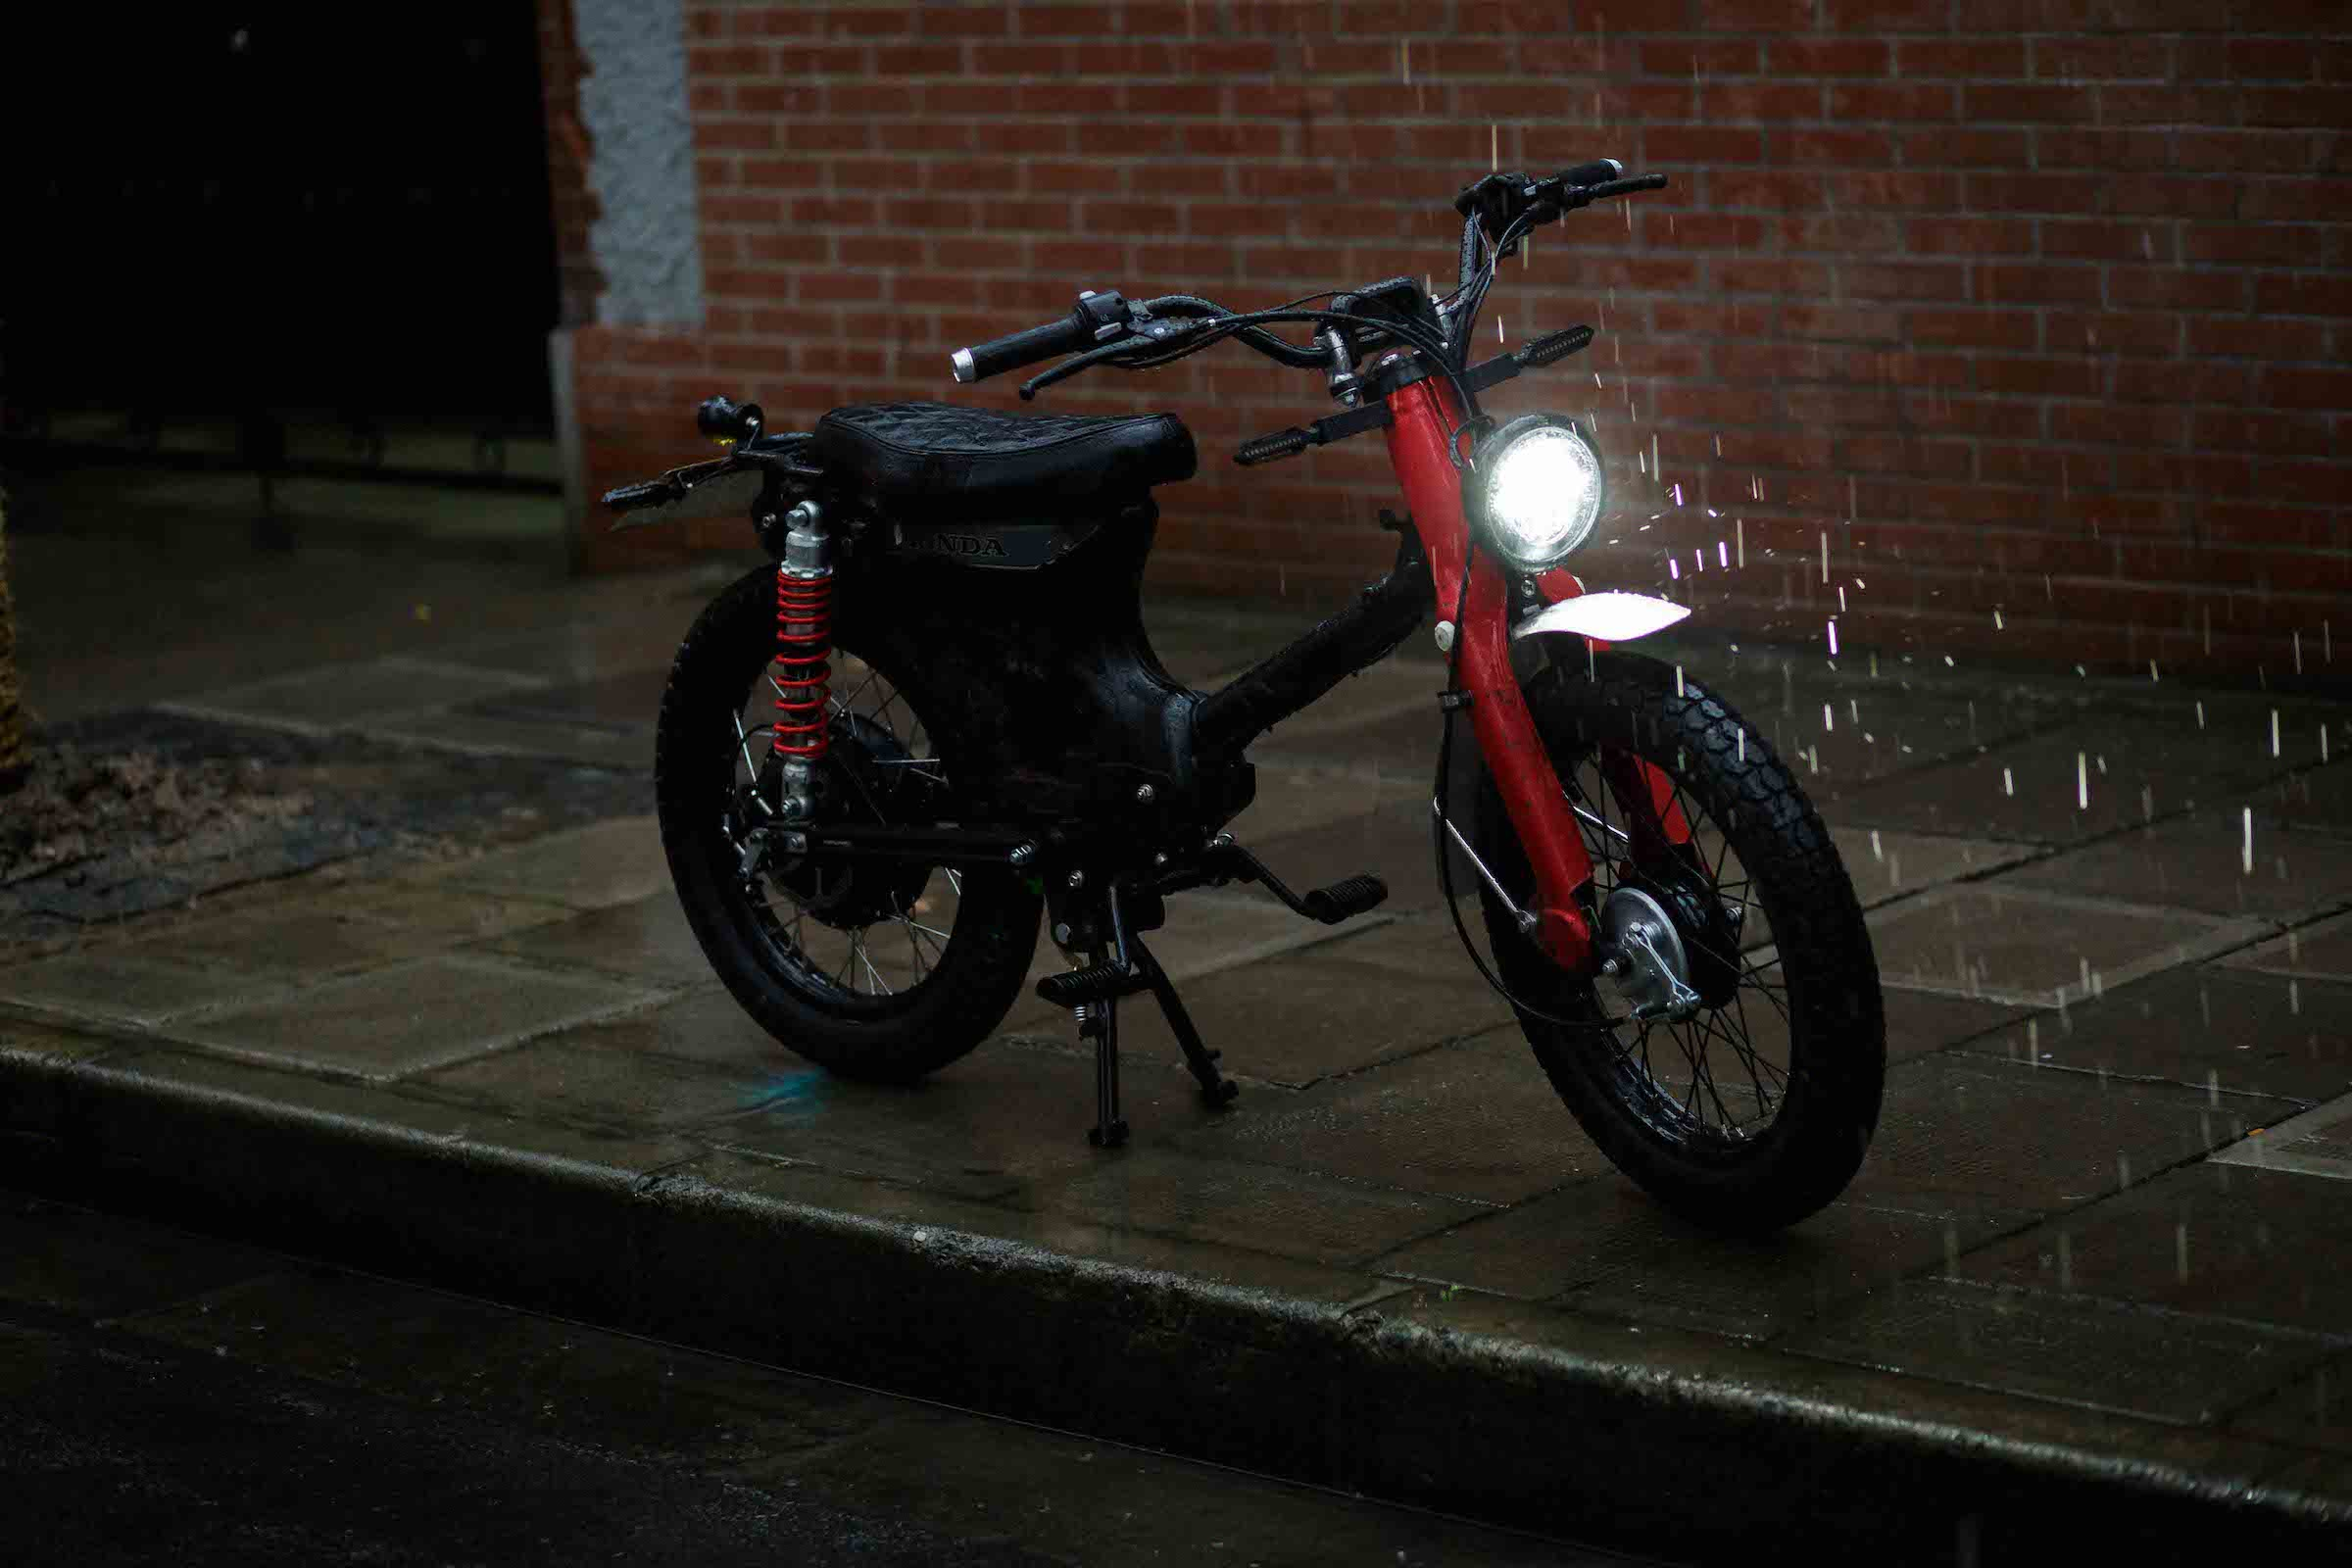 Ebay Motors Motorcycles >> The eCub - A Kit To Turn Your Honda Cub Into An Electric ...